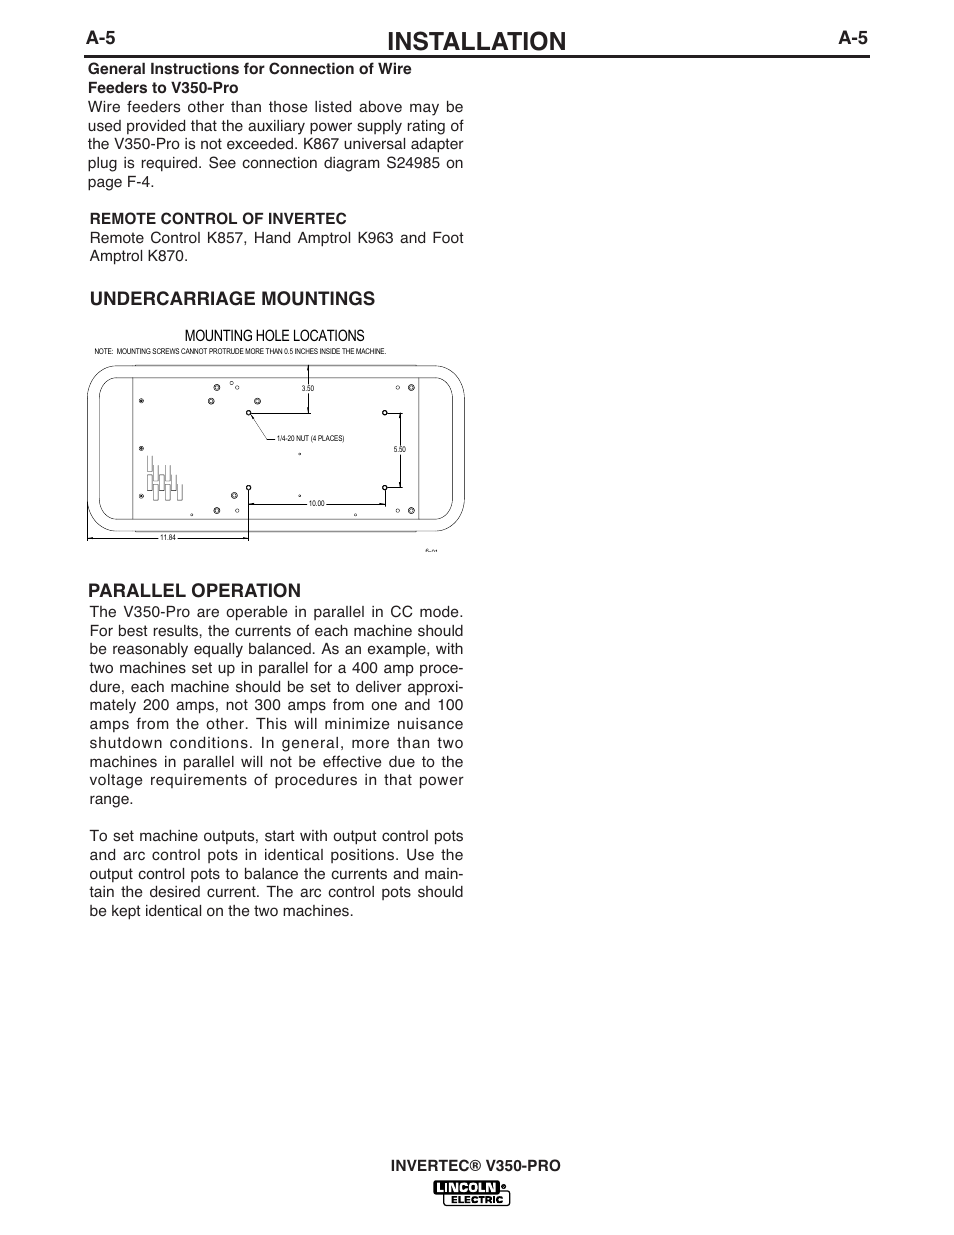 Lincoln K870 Amptrol Wiring Diagram Schematics Installation Undercarriage Mountings Parallel Operation Ottawa Diagrams